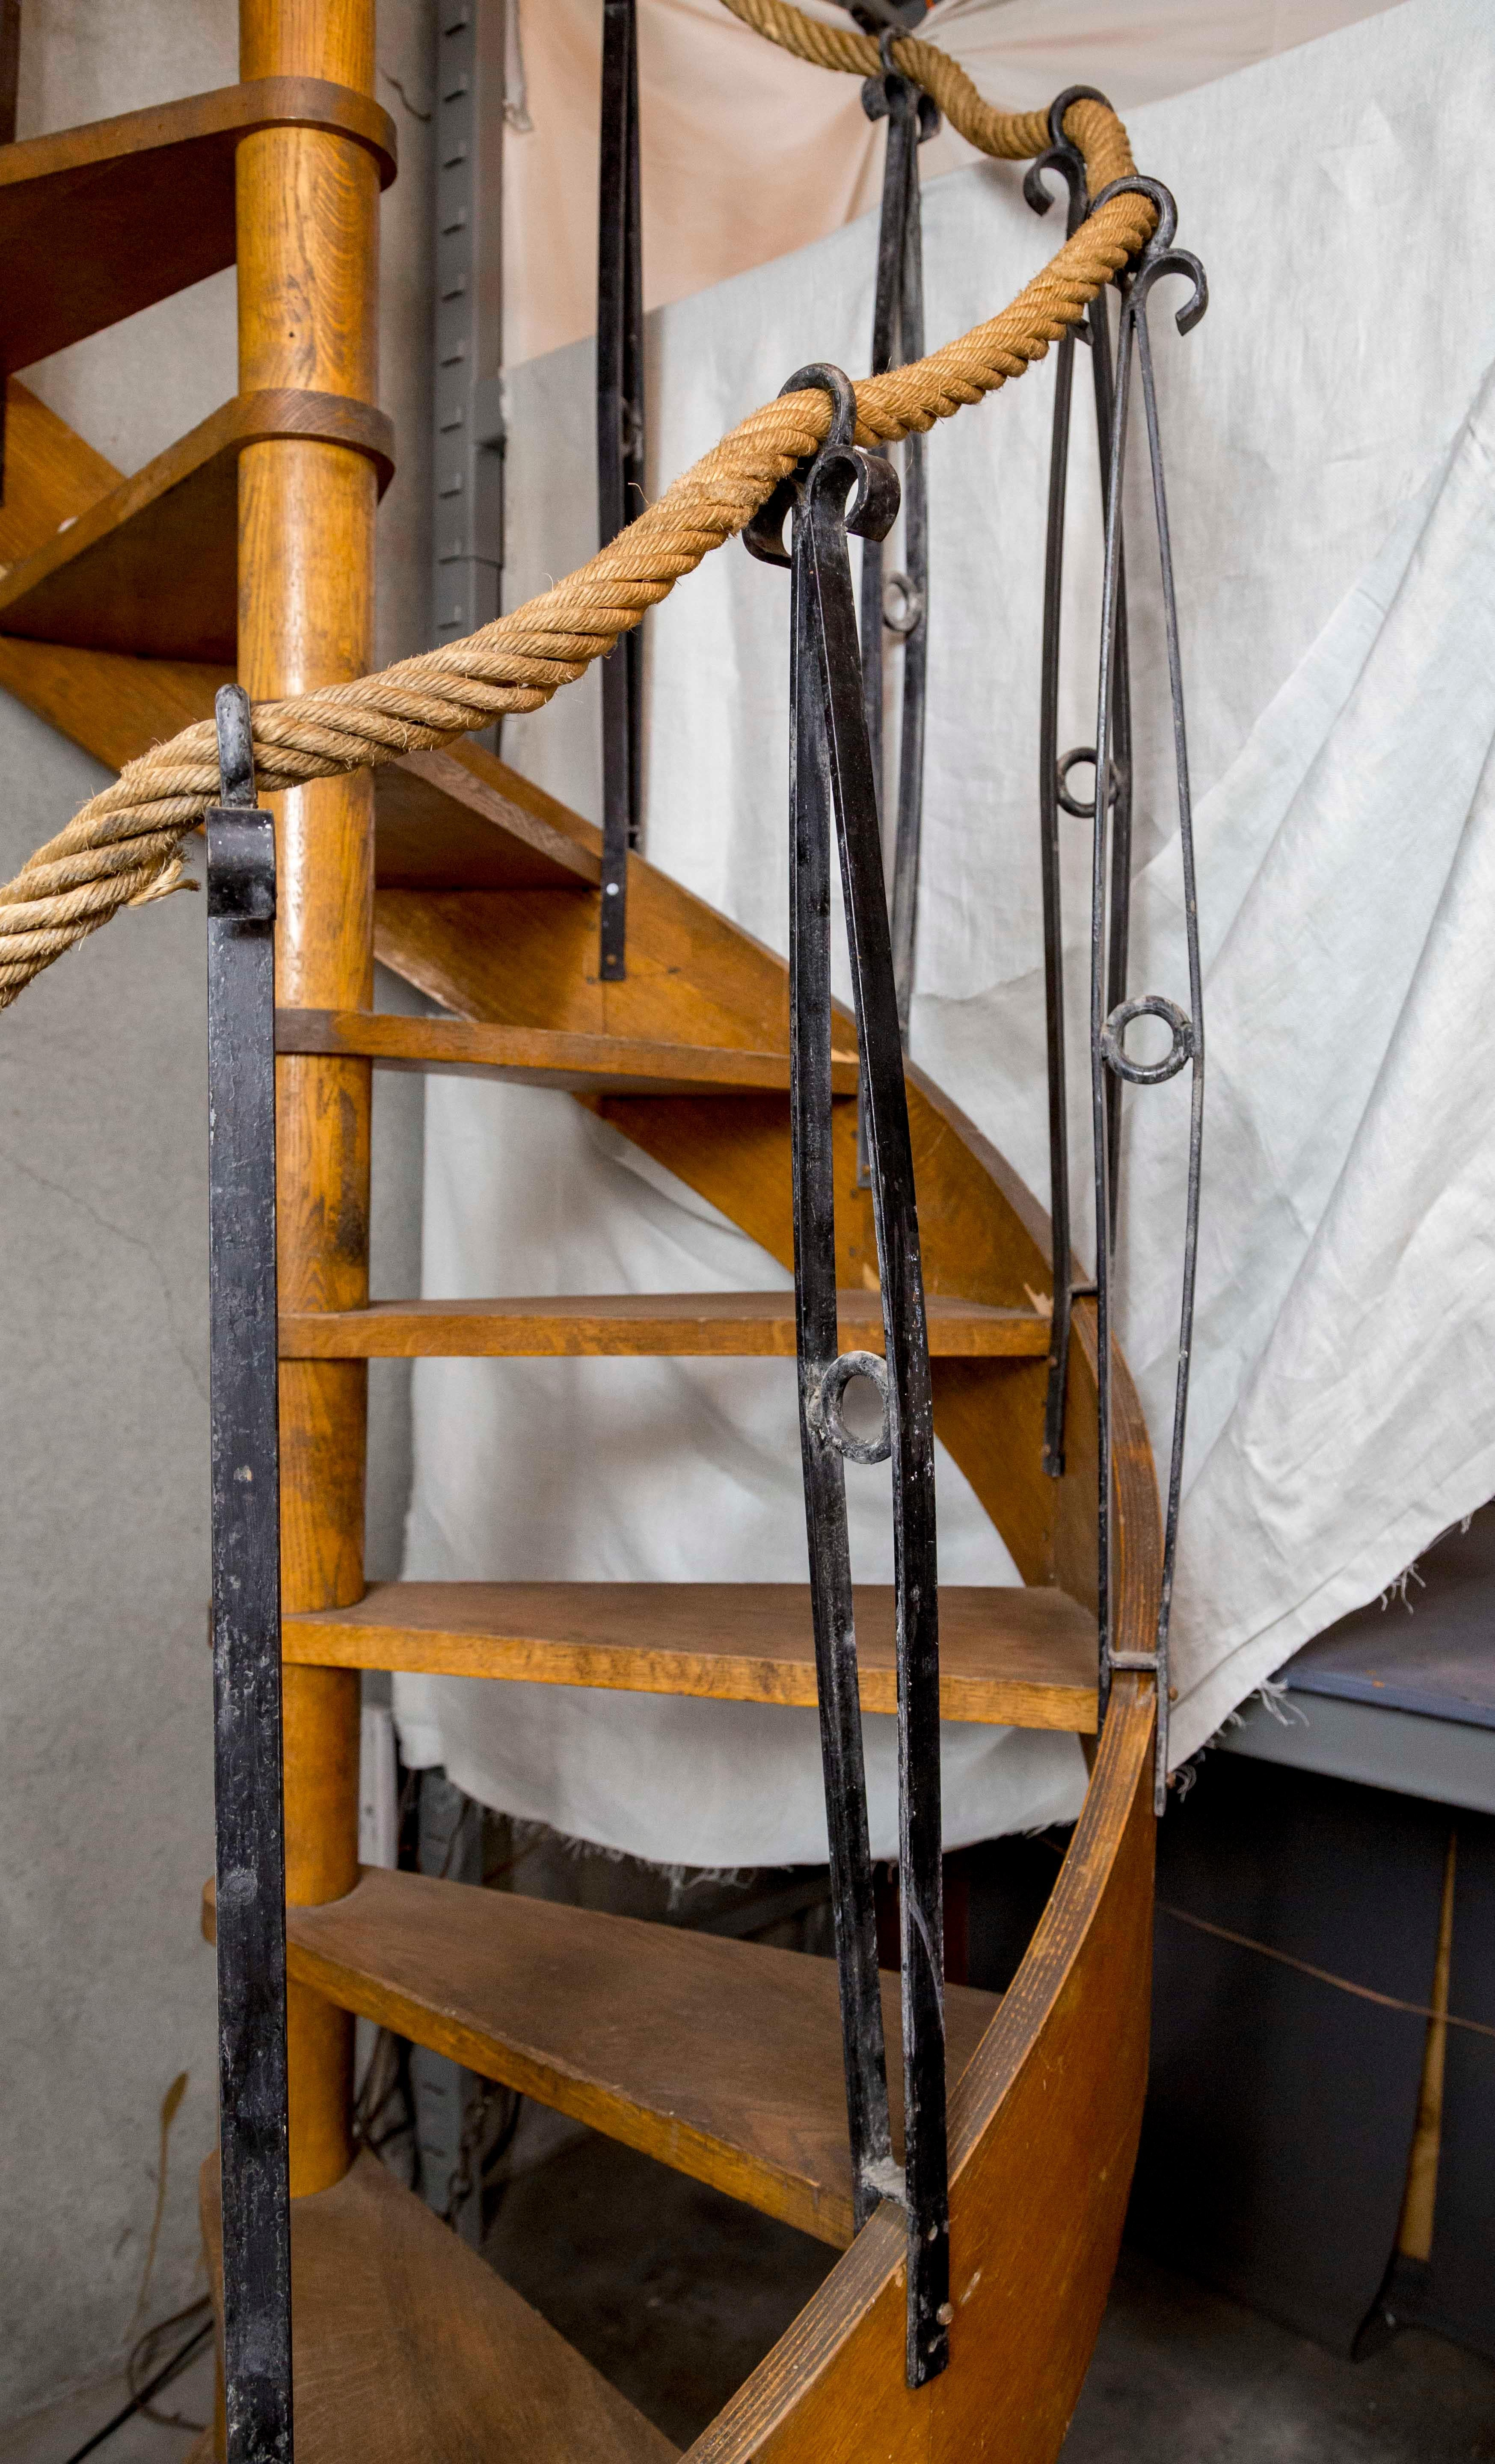 1930s Wood Spiral Staircase With Wrought Iron Balusters And Rope Railing